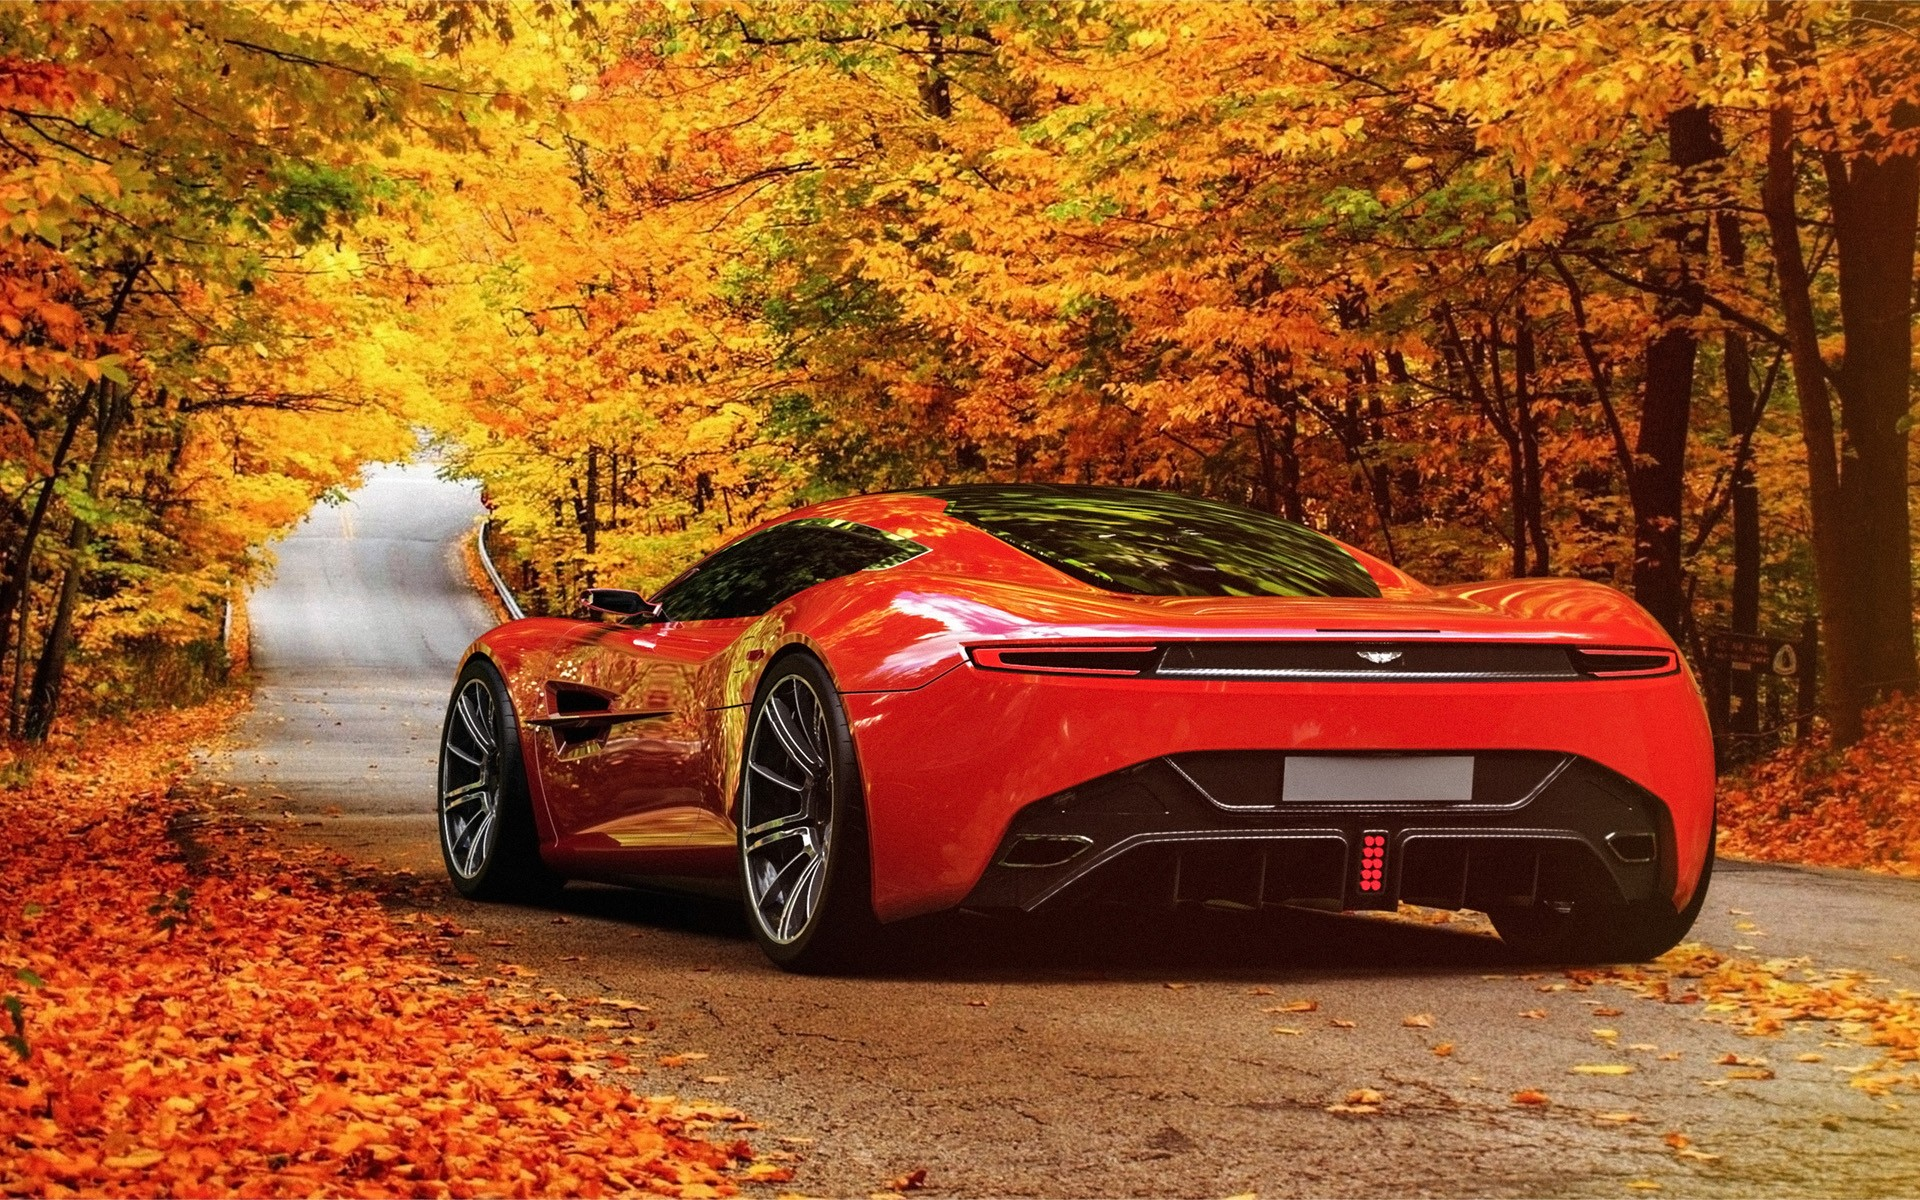 aston martin in autumn scenery wallpapers | aston martin in autumn